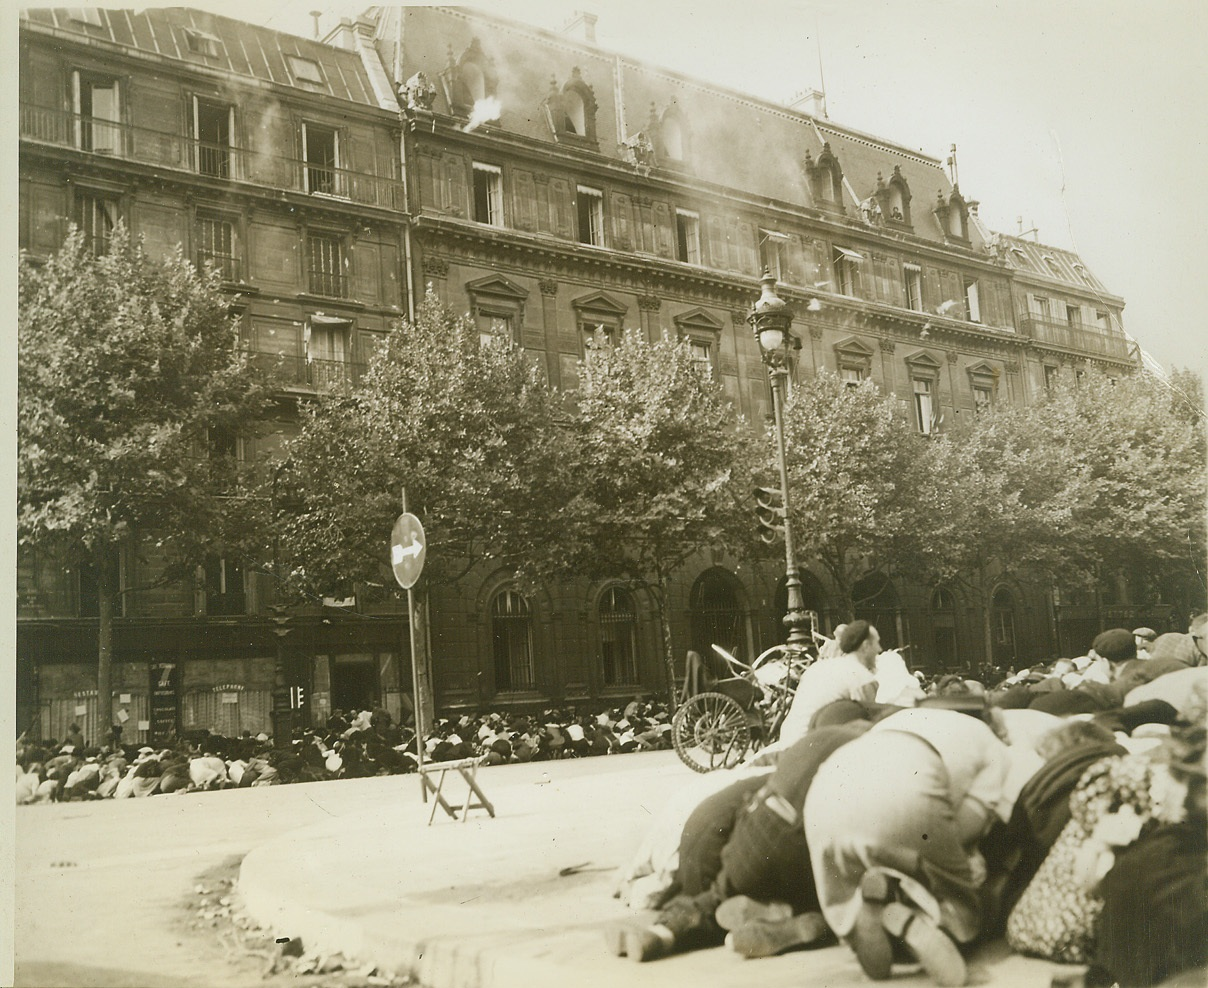 Bullets -- Unwelcome Guest at Celebration, 8/30/1944. FRANCE -- Part of the huge crowd gathered to pay tribute to Gen. Charles De Gaulle as he entered liberated Paris, crouch for cover as enemy sniper fire breaks up the celebration. Note the gun flash from the top floor, center, of the building at left and the smoke from gunfire still lingering in the air. Credit -WP-(ACME Photo by Andrew Lopez, War Pool Correspondent);